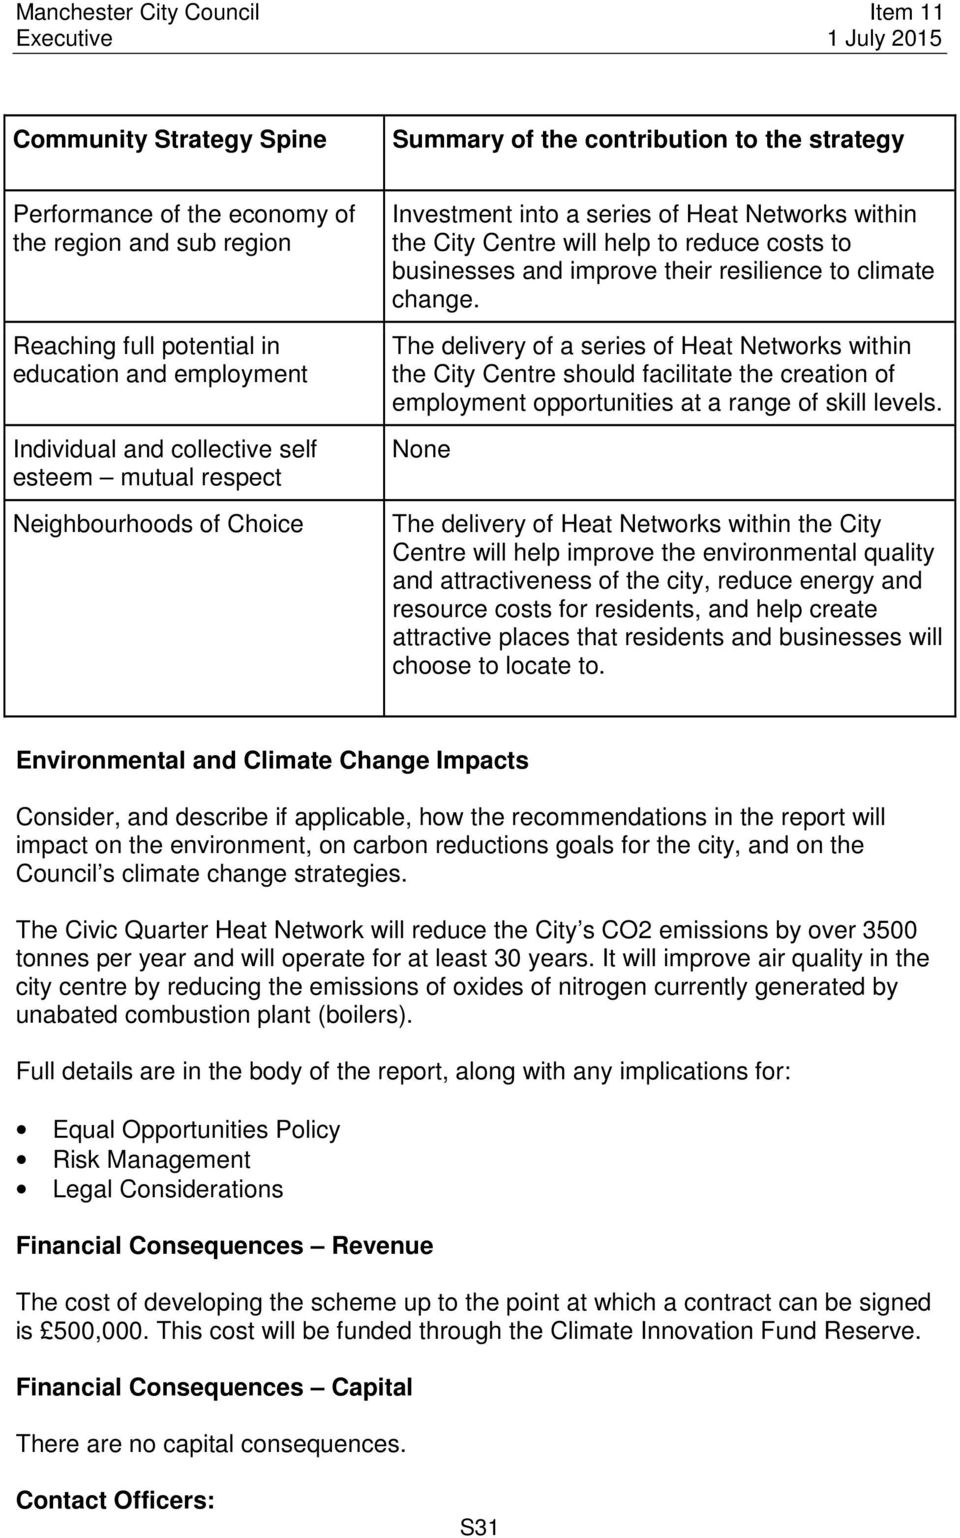 climate change. The delivery of a series of Heat Networks within the City Centre should facilitate the creation of employment opportunities at a range of skill levels.